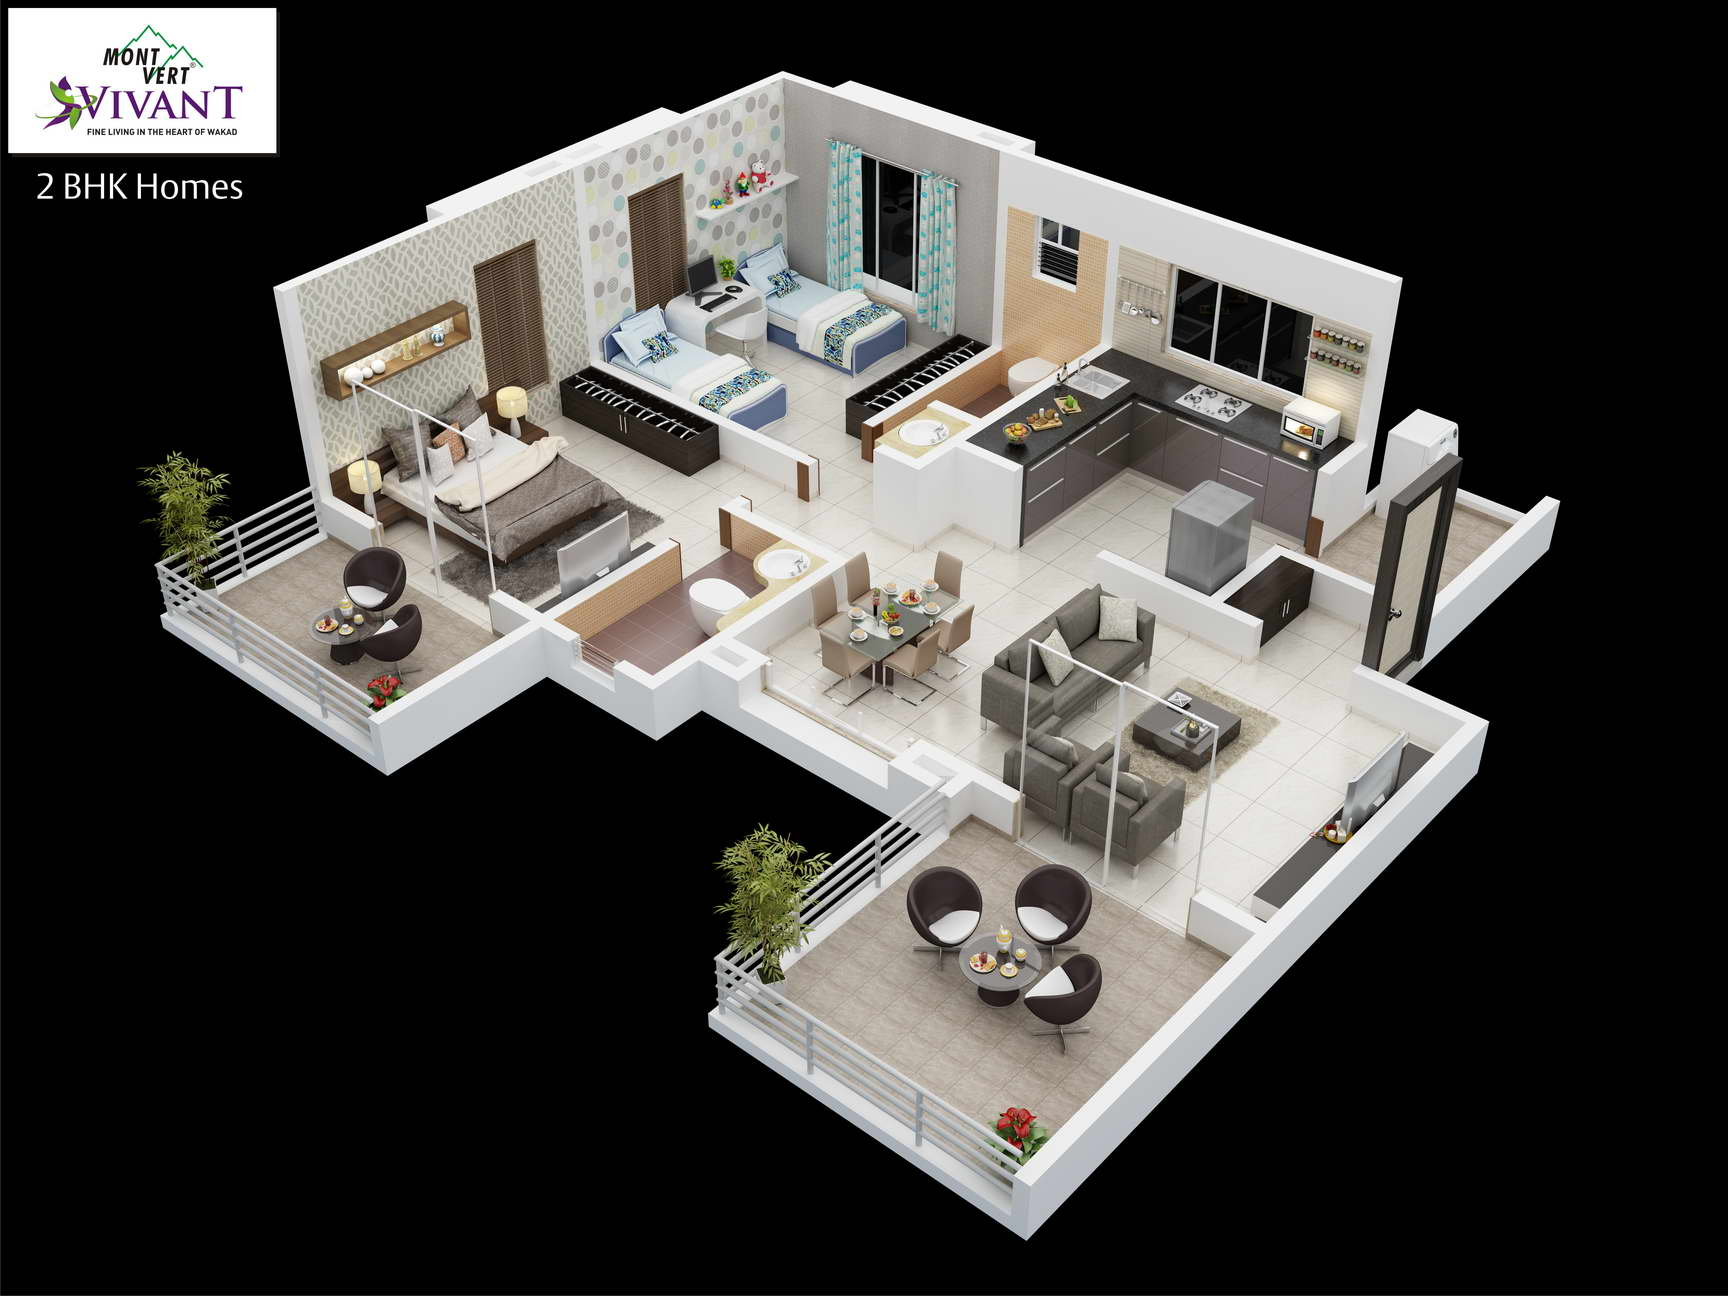 2bhk-affordable-flats-wakad-pune-vivant